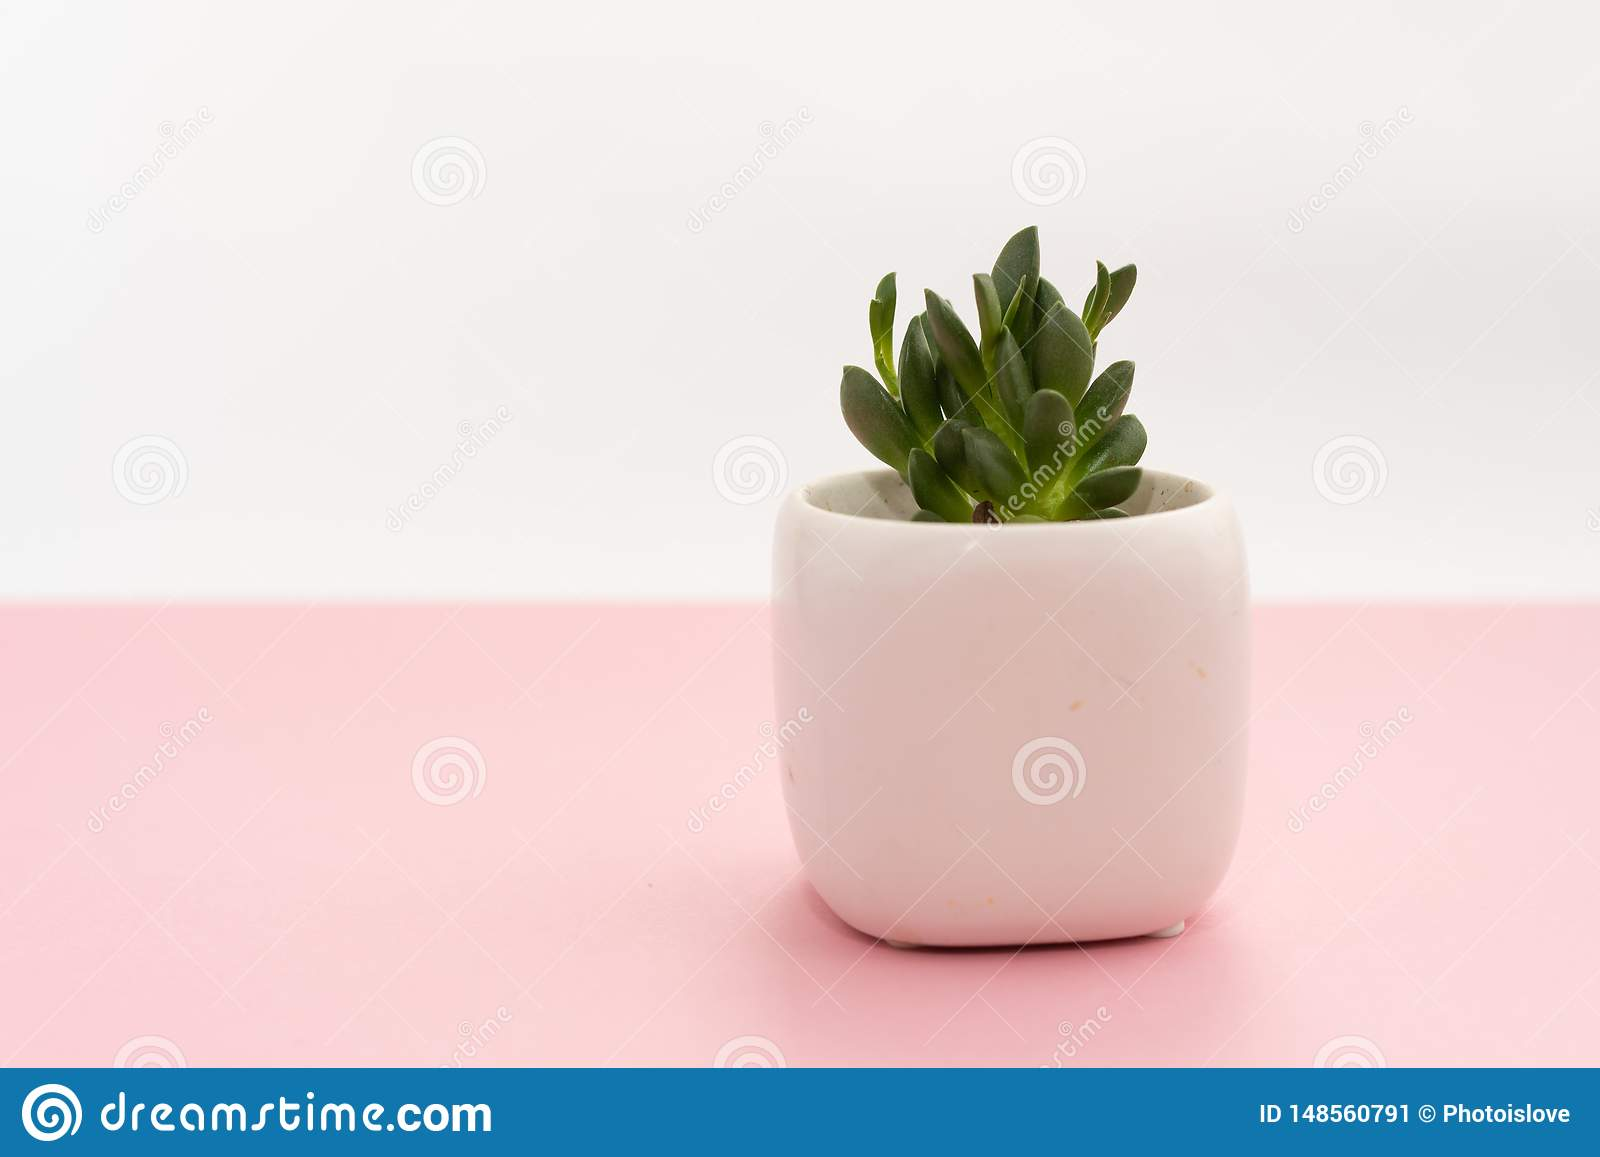 Little succulent plant in a white pot on a pink and white background. Design concept. Copy space mockup